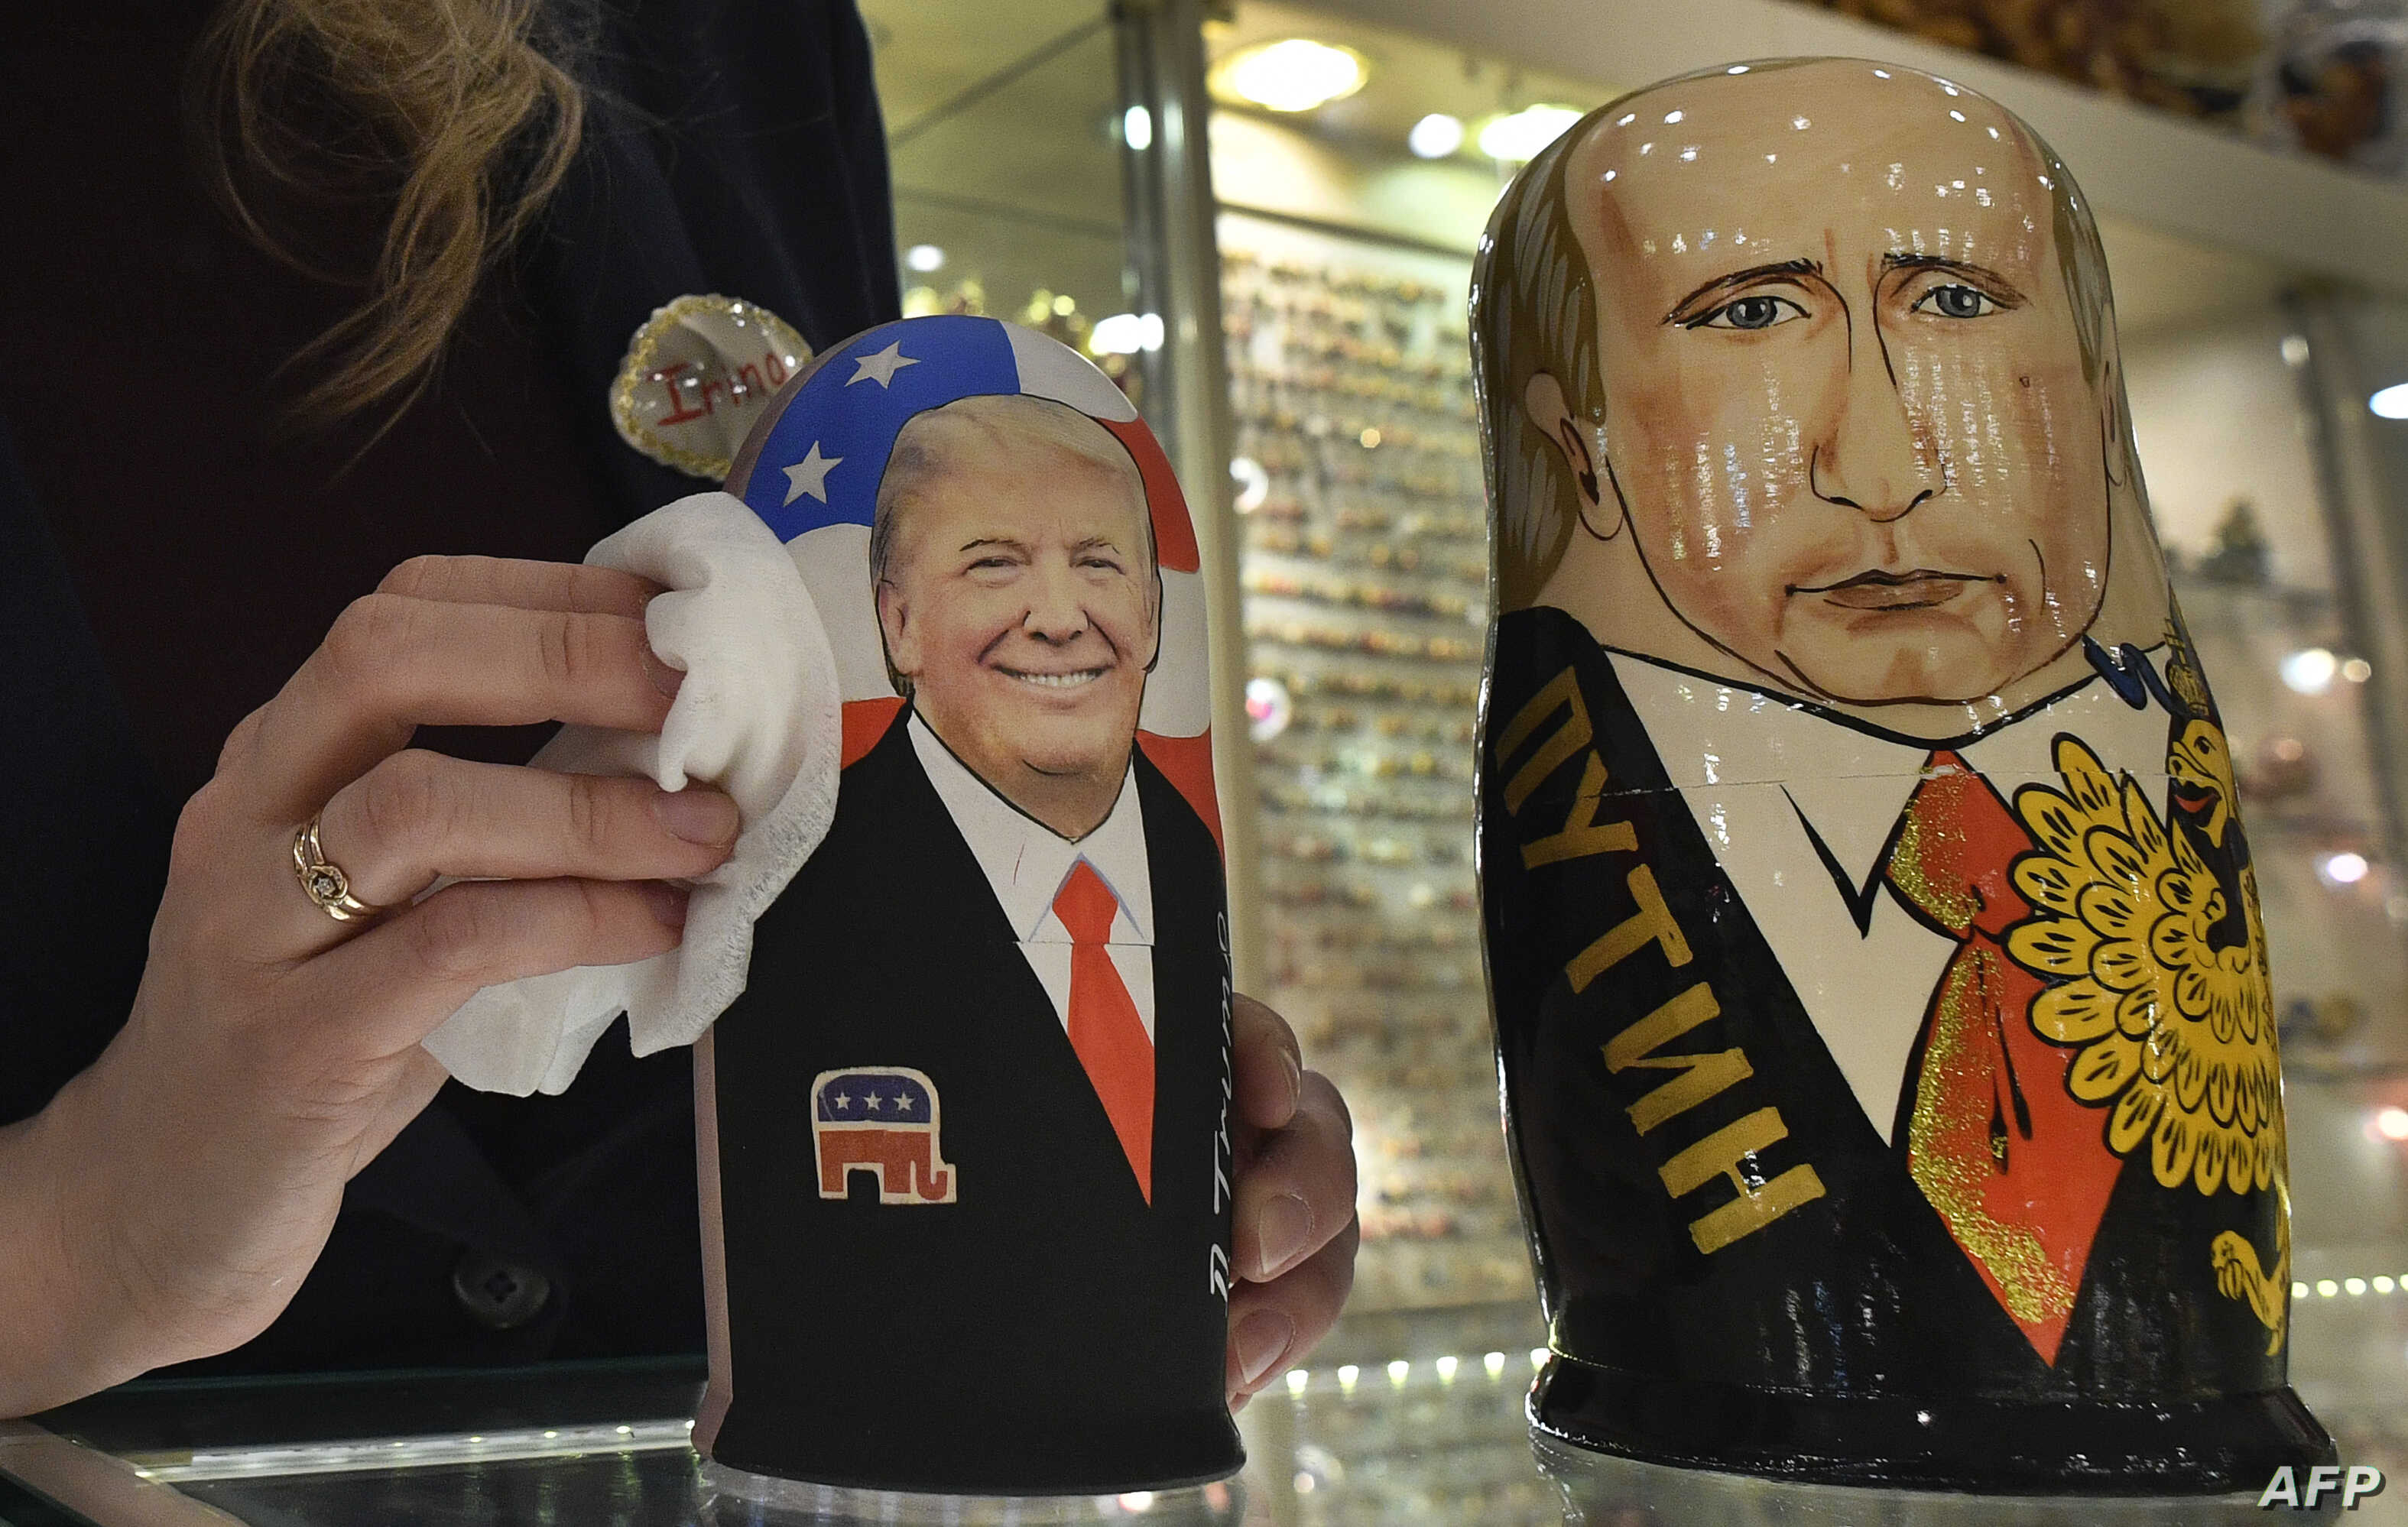 An employee polishes traditional Russian wooden nesting dolls depicting Donald Trump (L), U.S. president-elect at the time, and Russian President Vladimir Putin at a gift shop in central Moscow, Russia, Jan. 16, 2017.